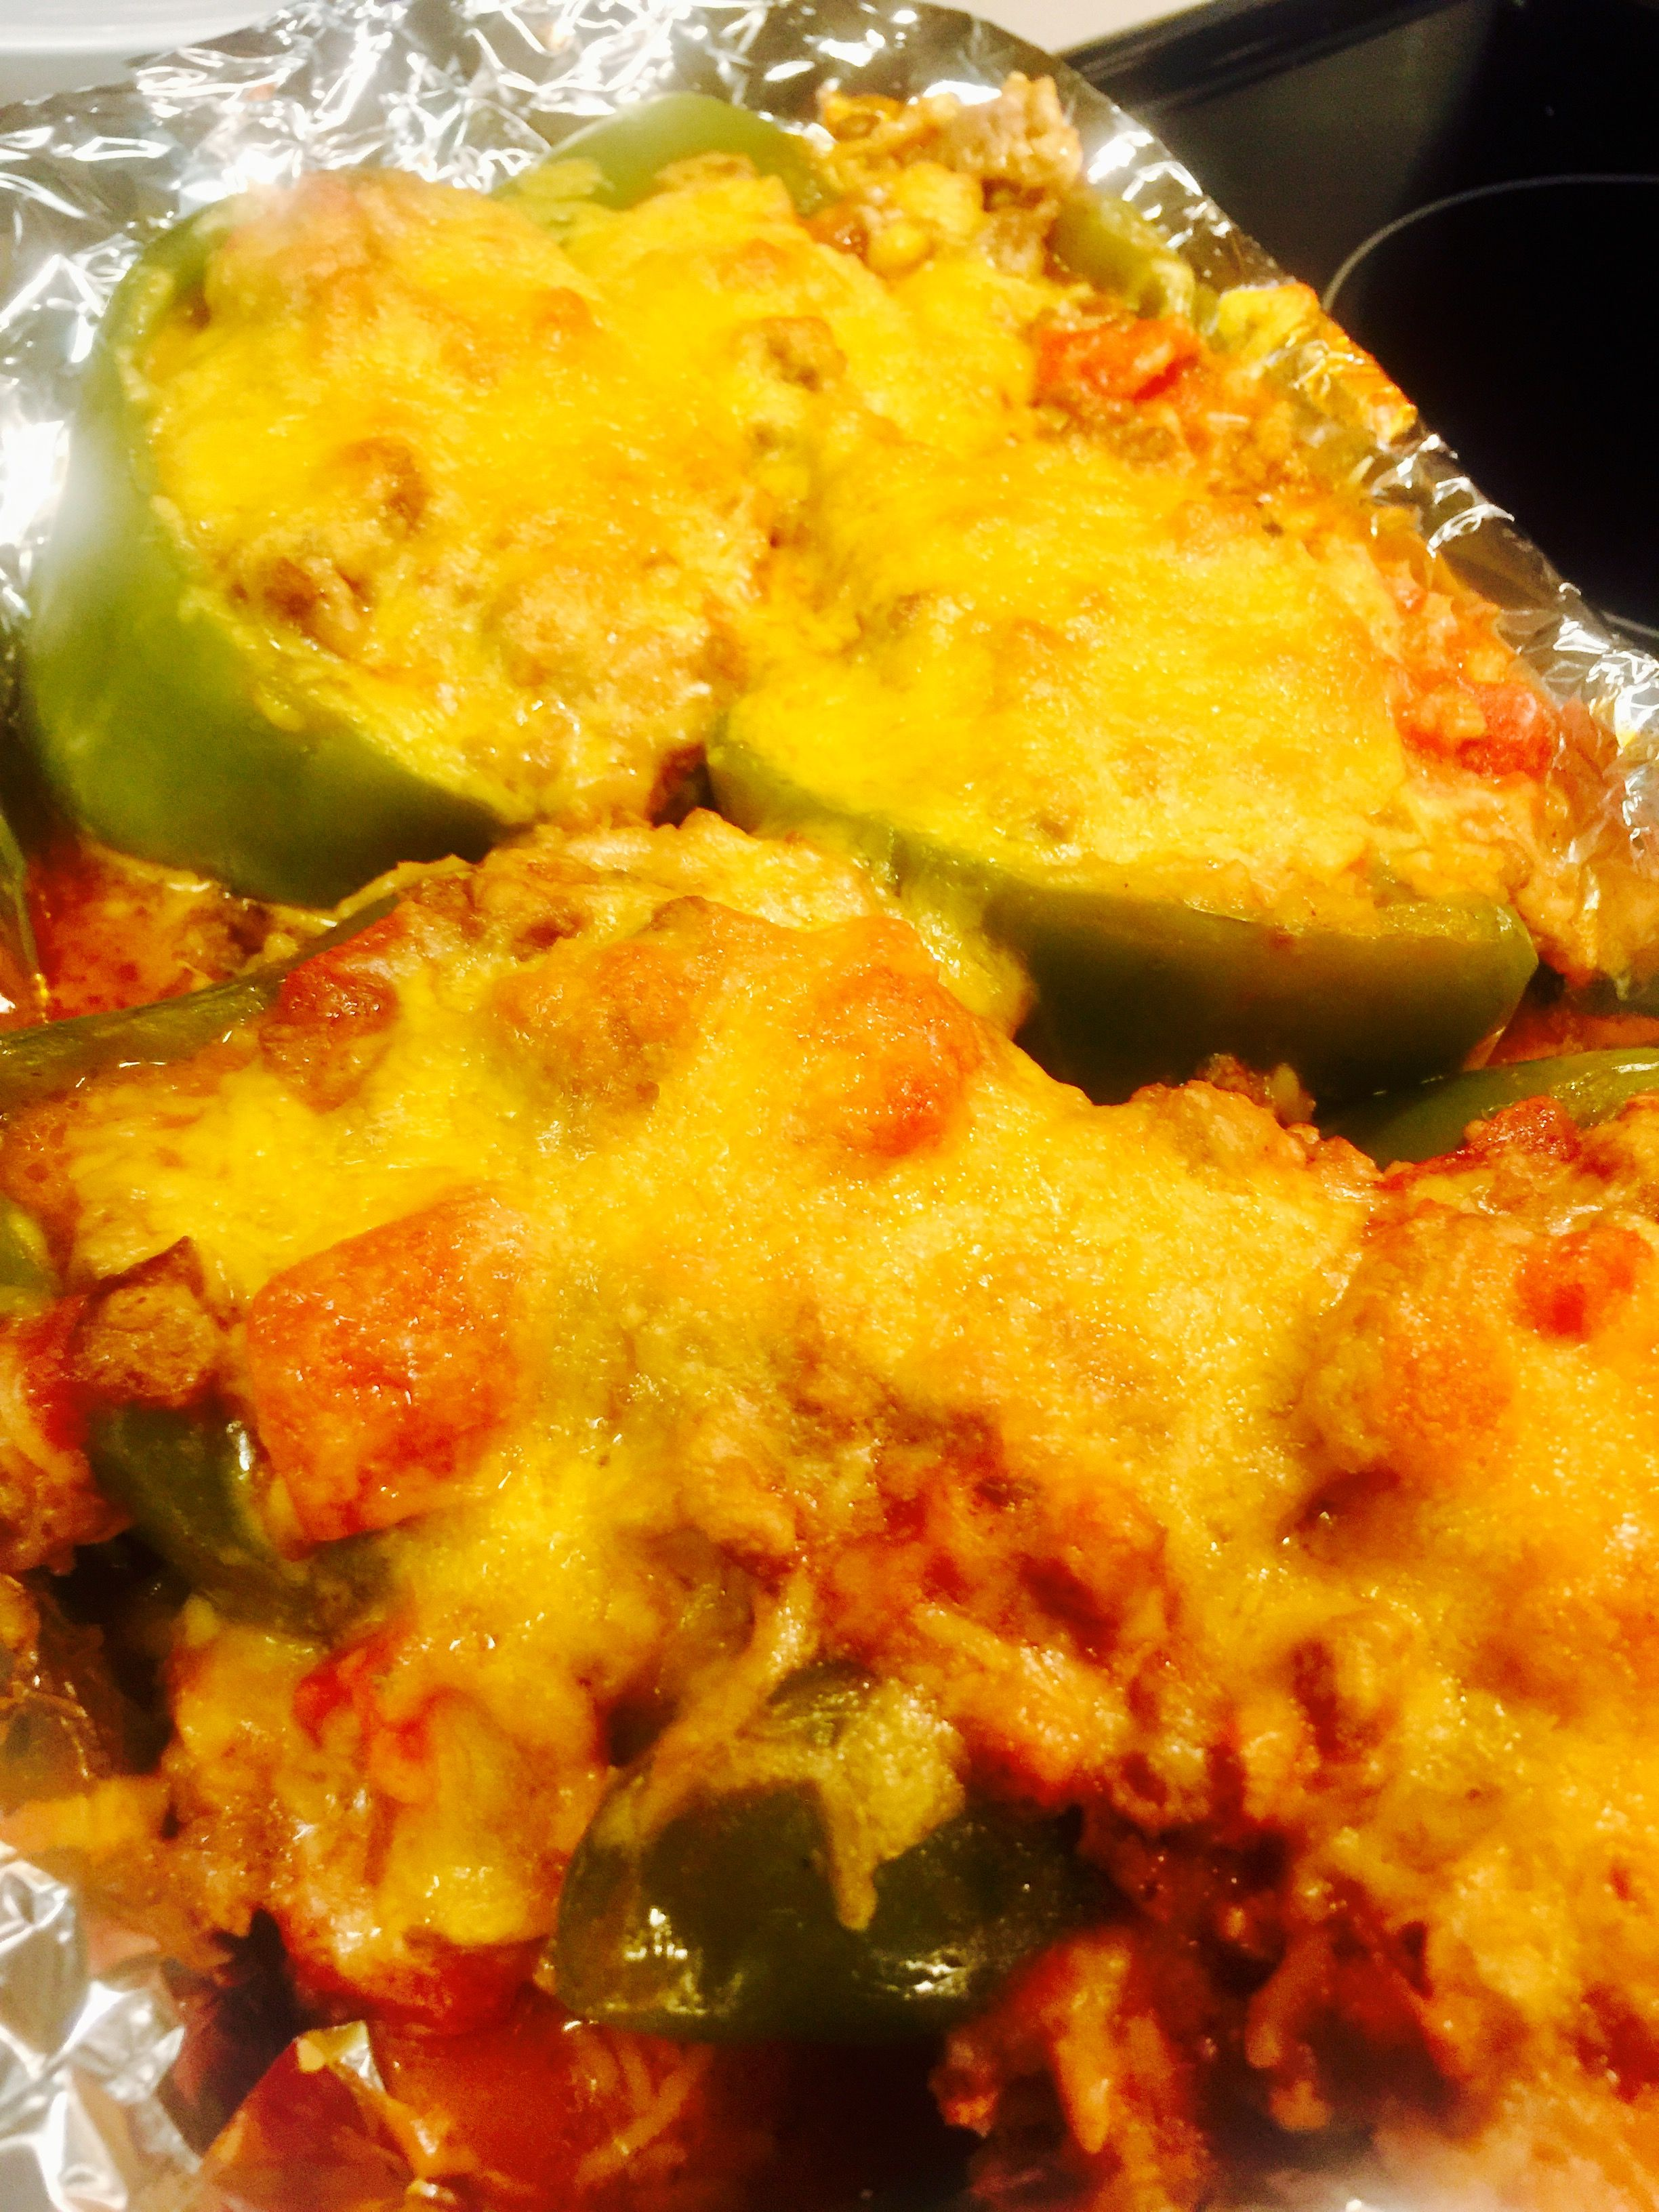 Stuffed Bell Peppers With Images Soul Food Stuffed Peppers Food